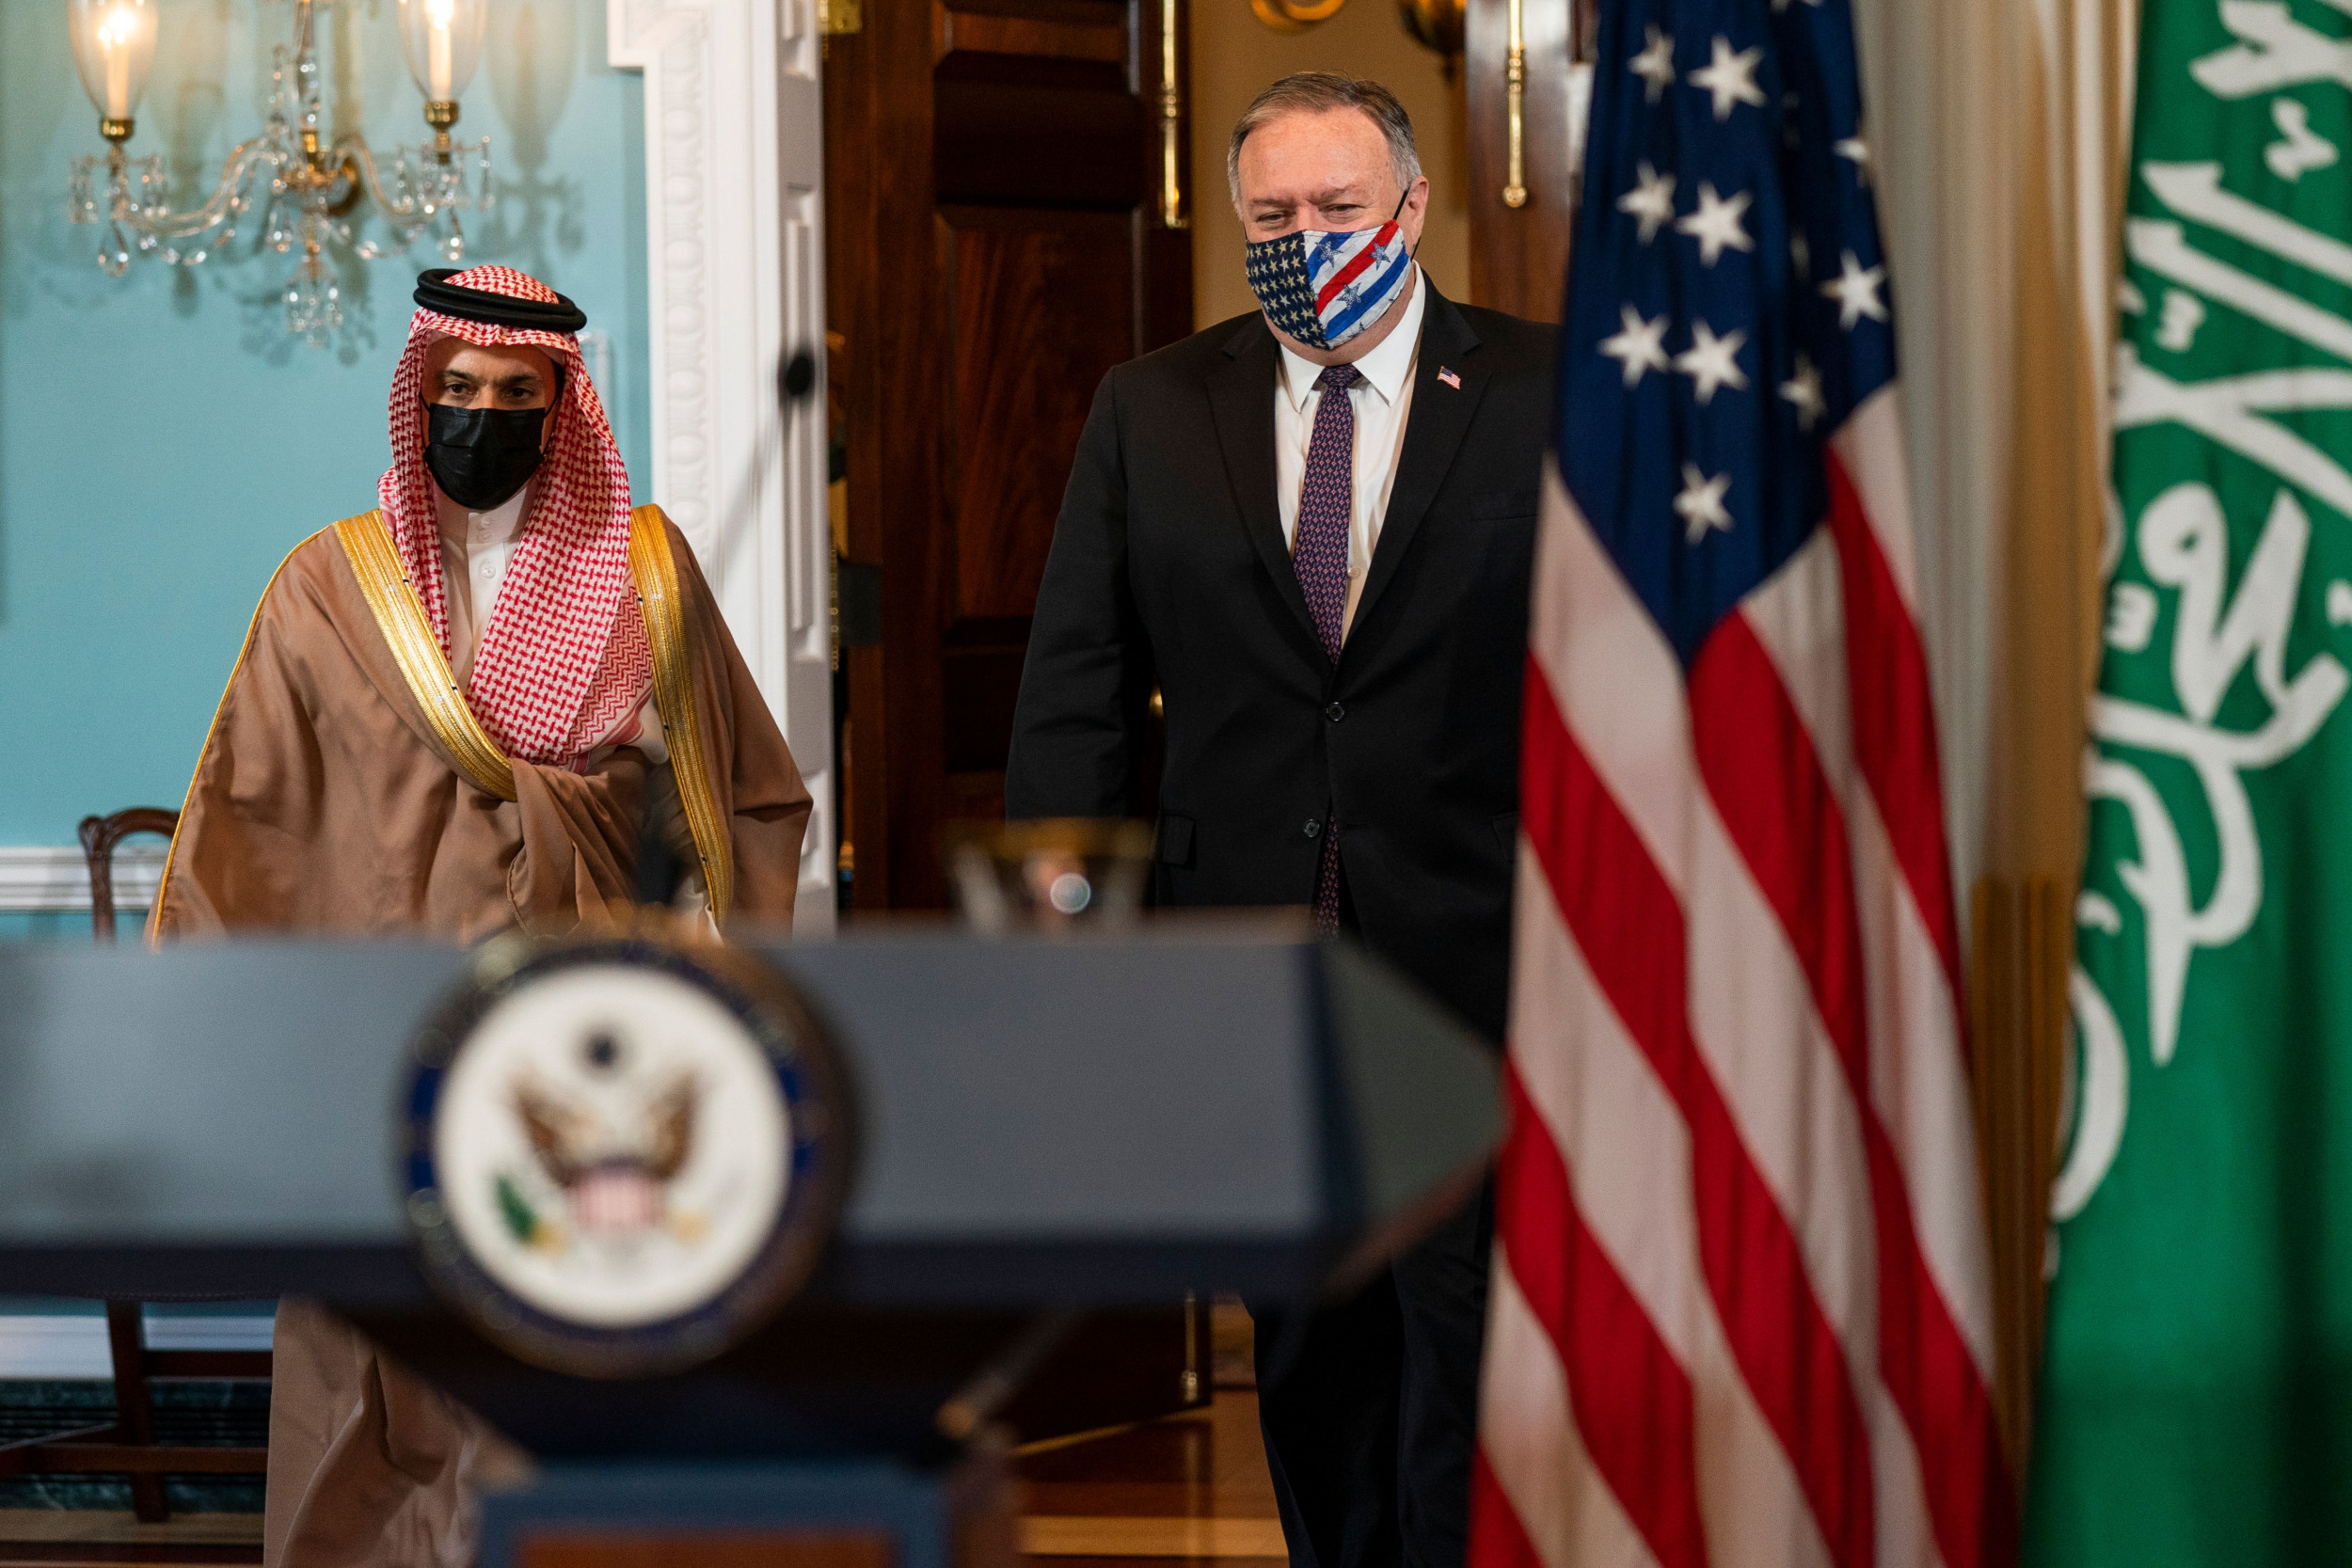 Pompeo Says Saudi Ties Are 'Strong,' but Biden Looks to Pressure Kingdom